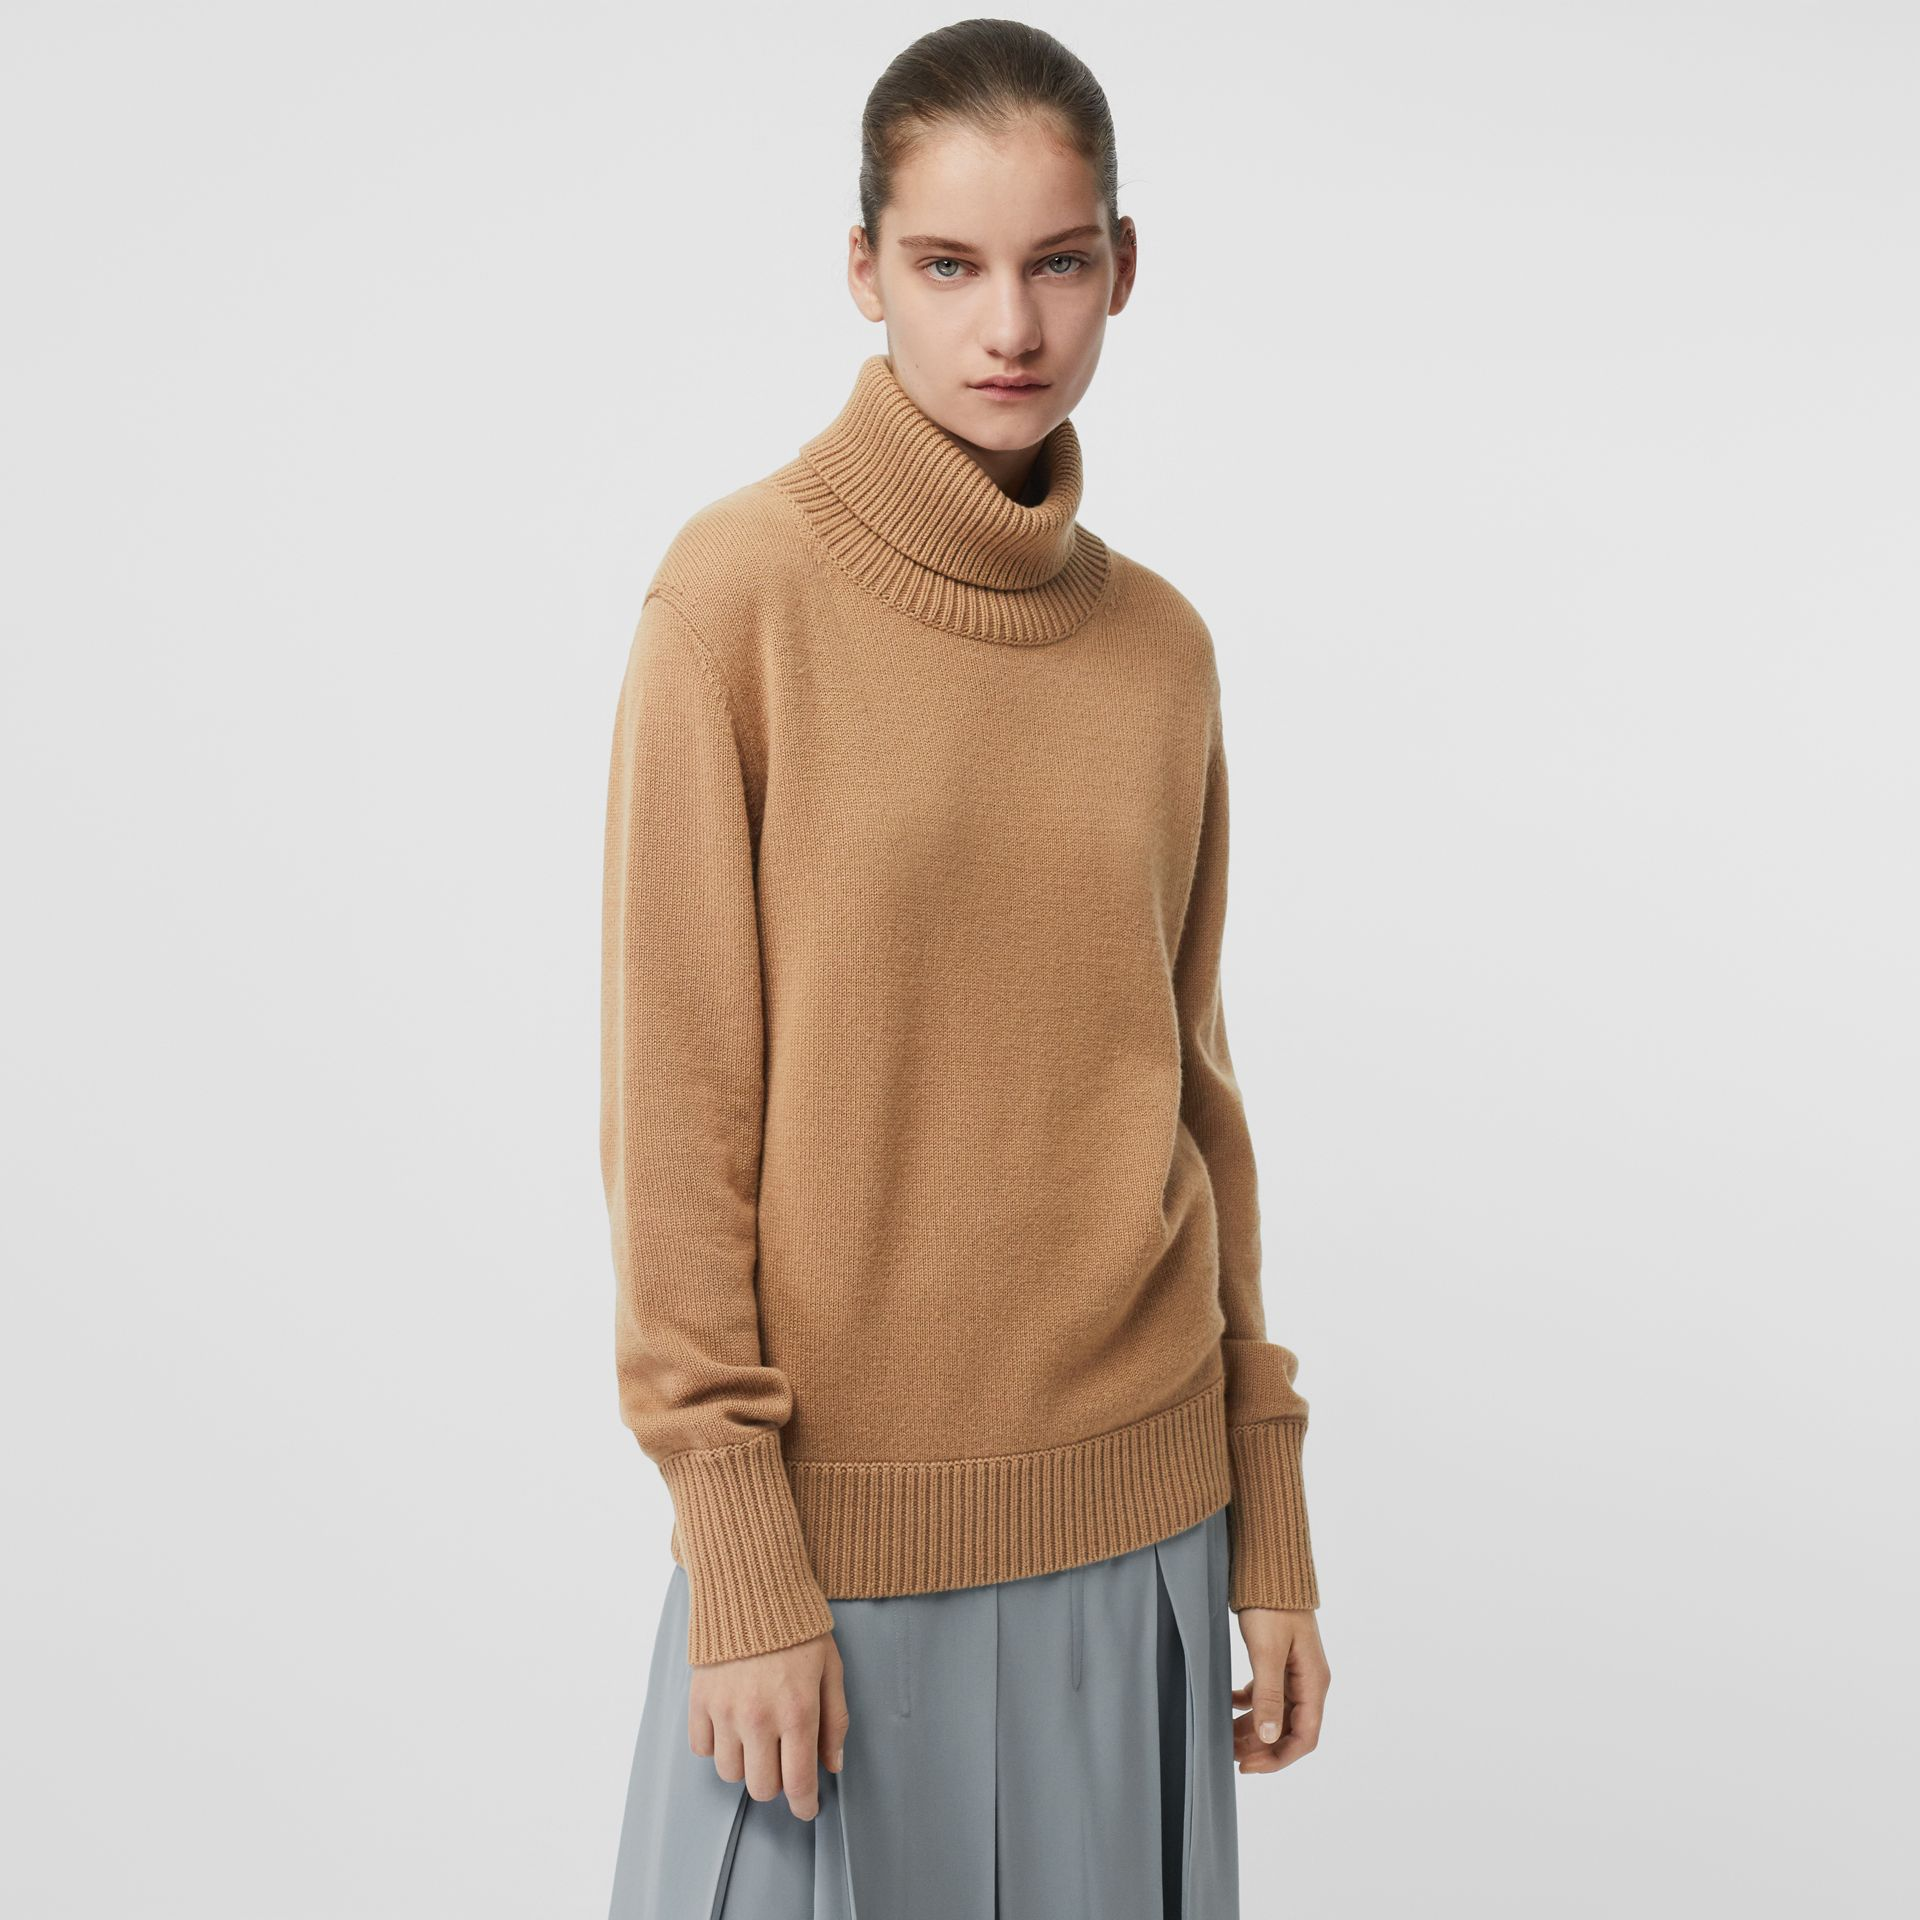 Embroidered Crest Cashmere Roll-neck Sweater in Camel - Women | Burberry - gallery image 0